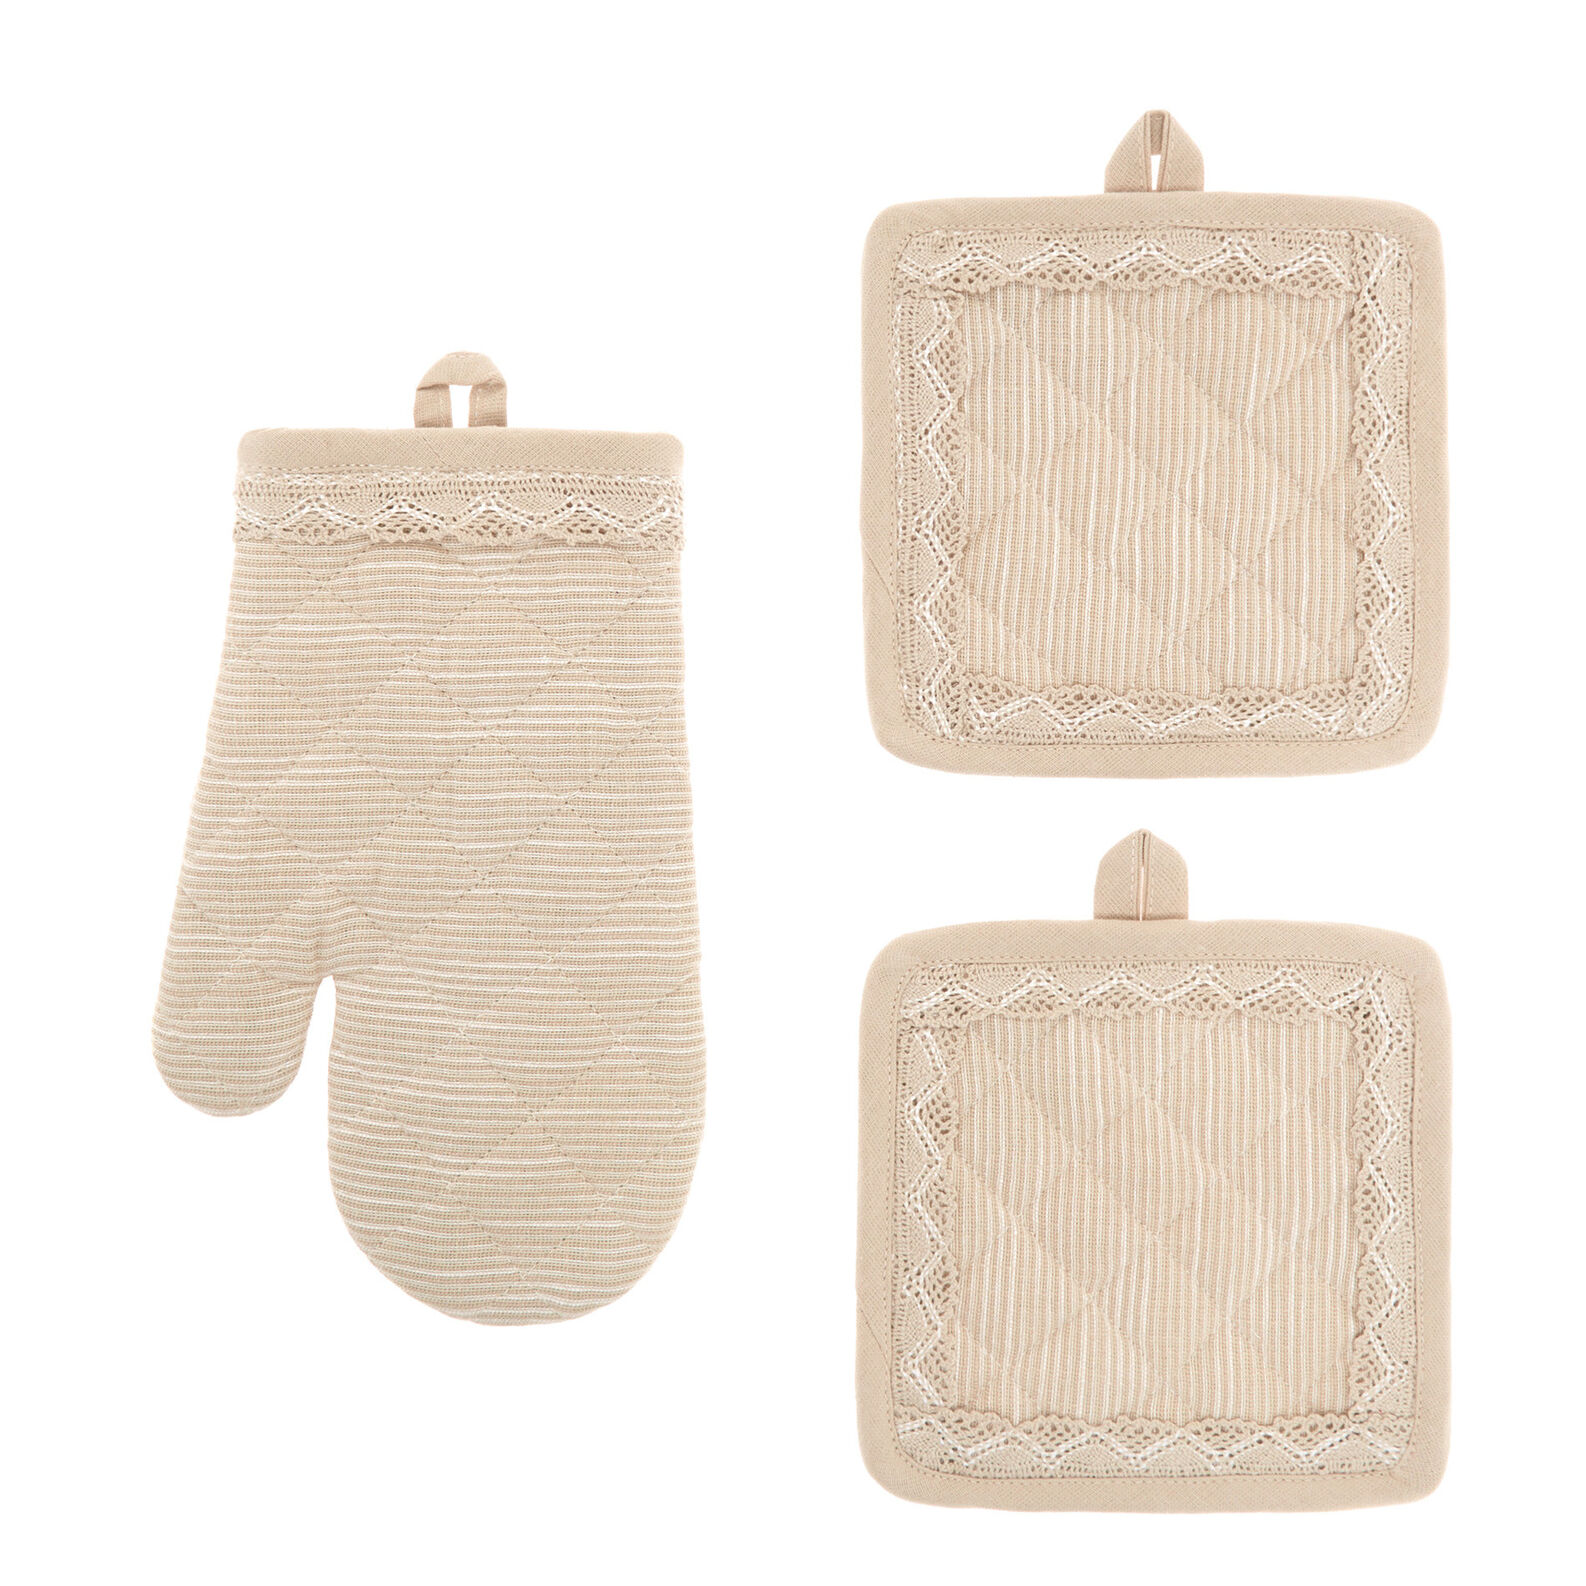 Set of 2 pot holders and oven mitt in iridescent cotton with lace edging